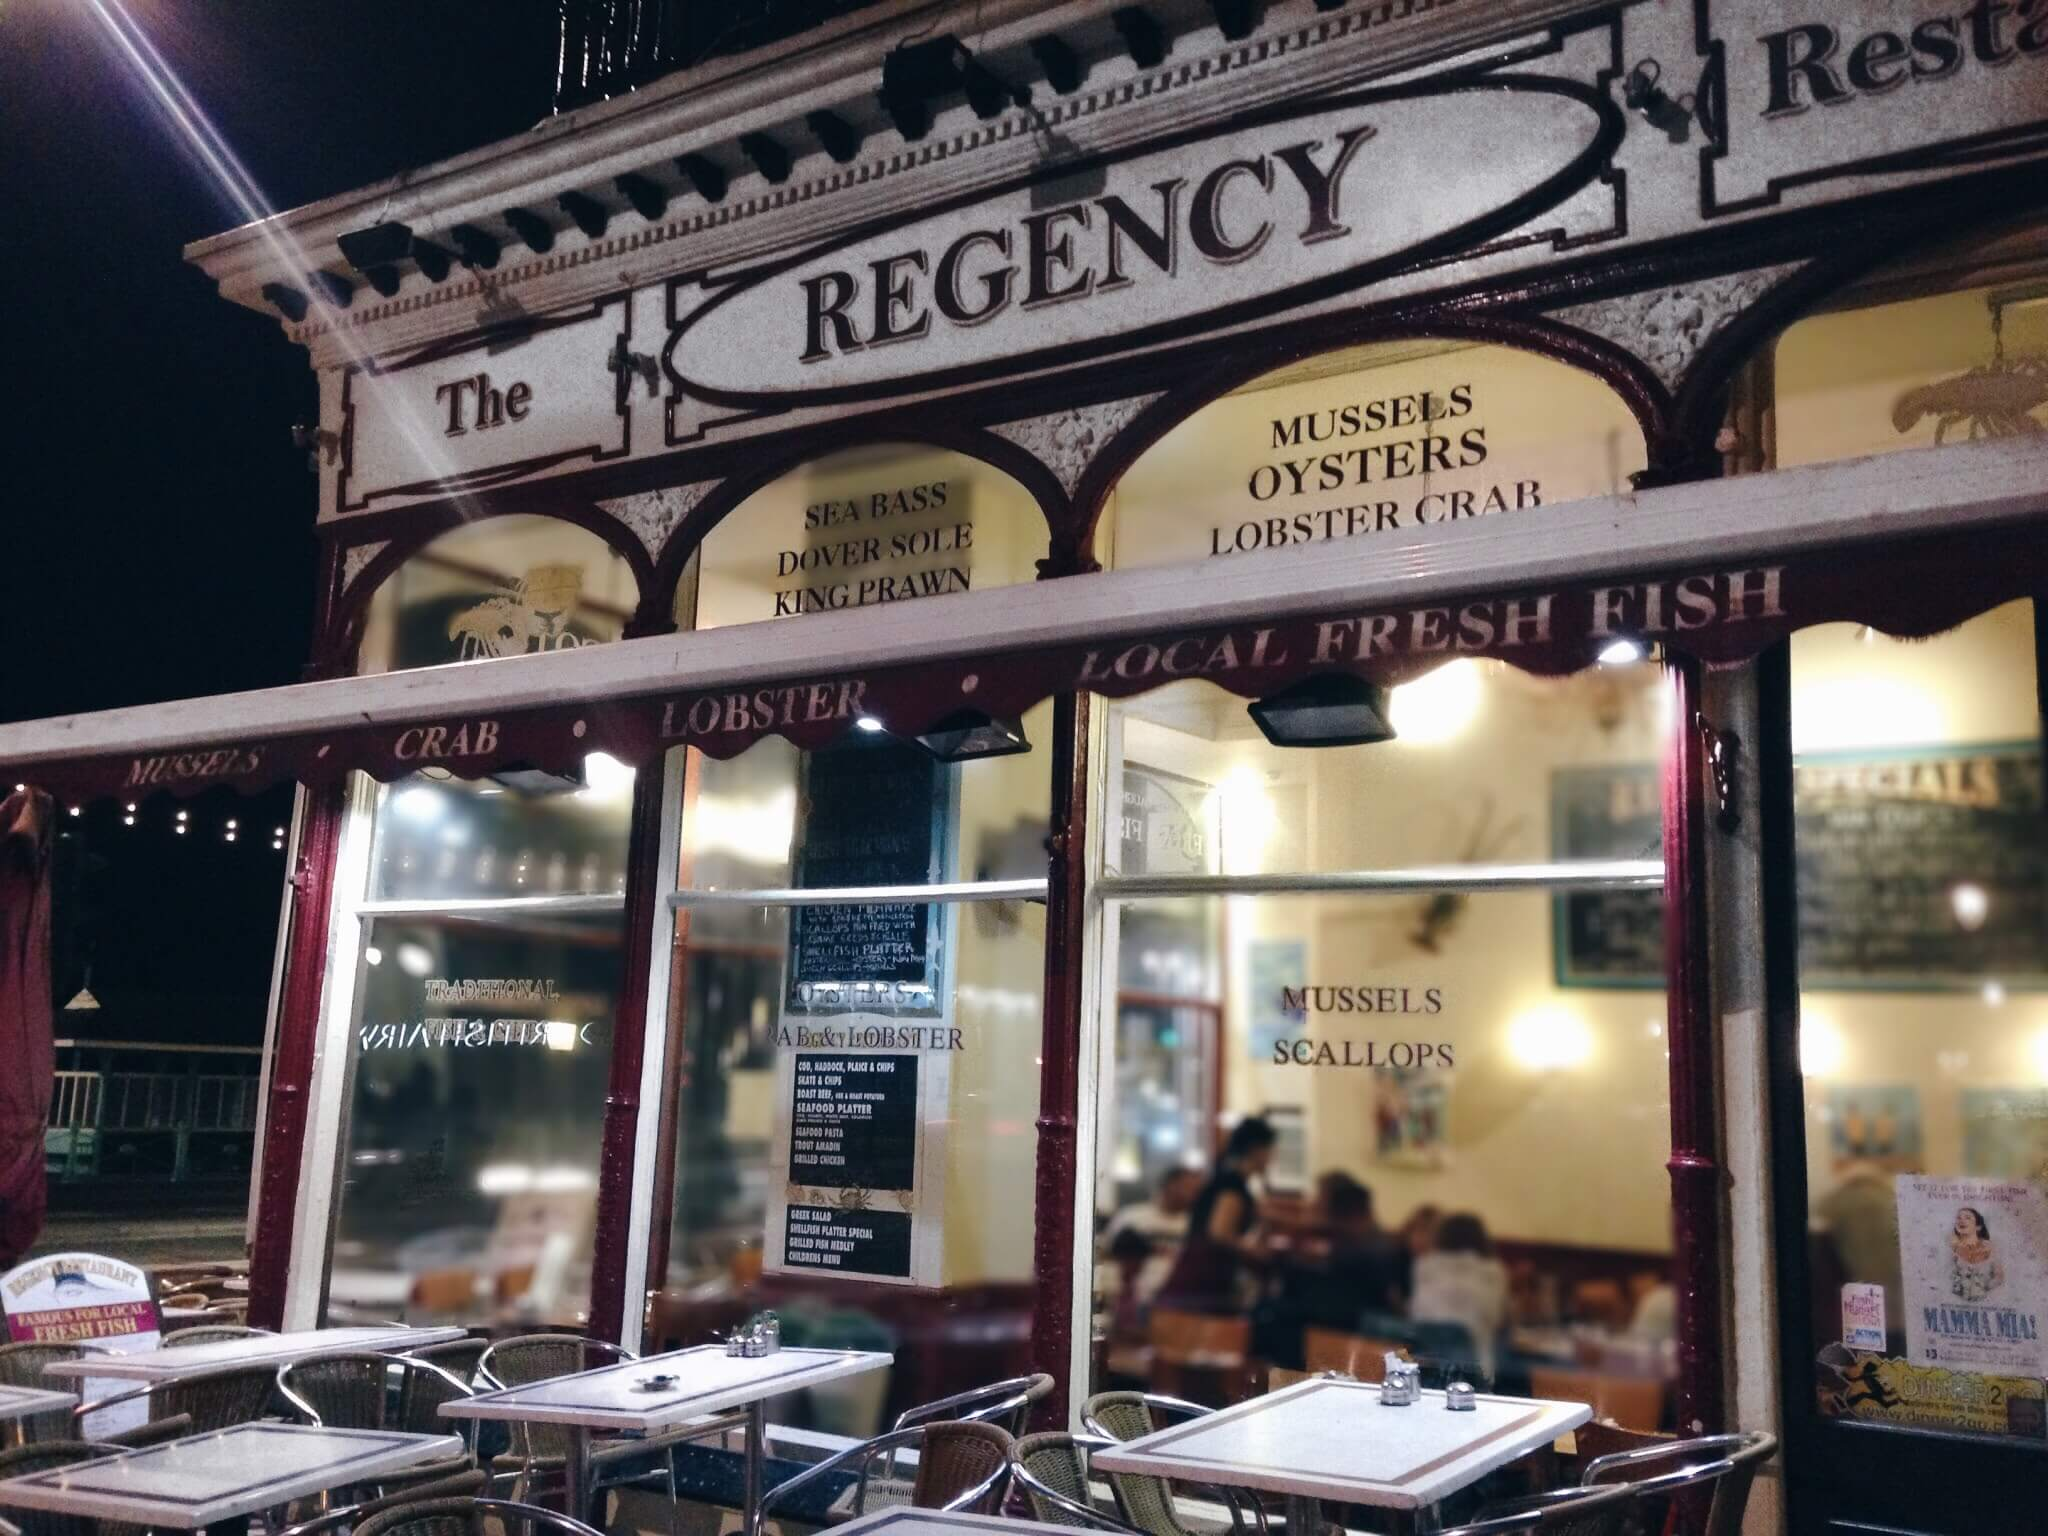 Brighton Regency Seafood Restaurant